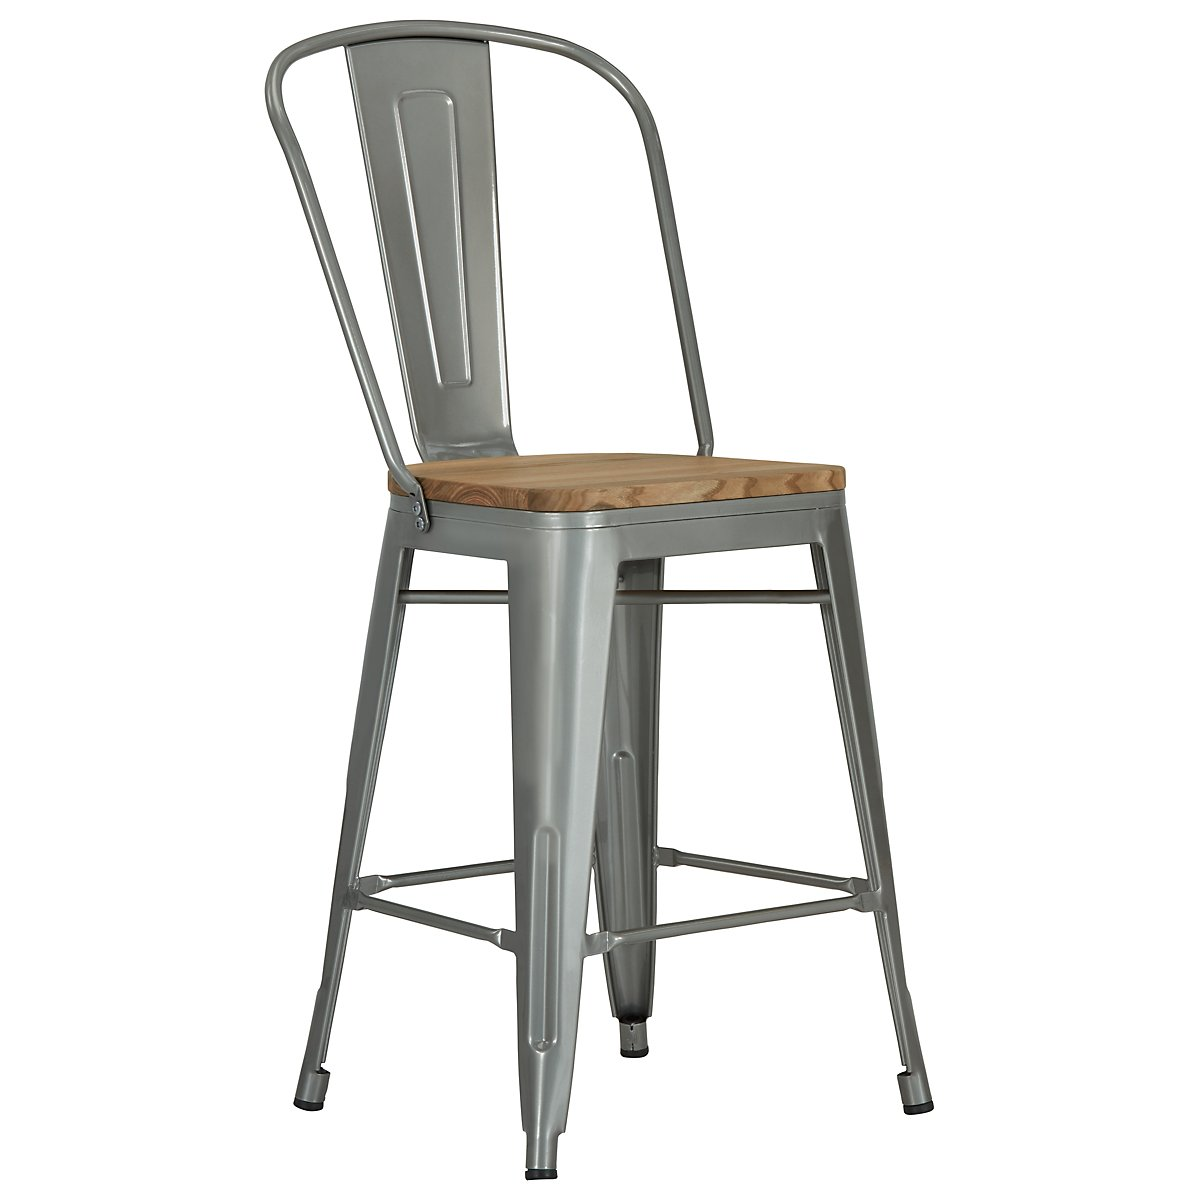 "Huntley Light Tone 24"" Wood Barstool"